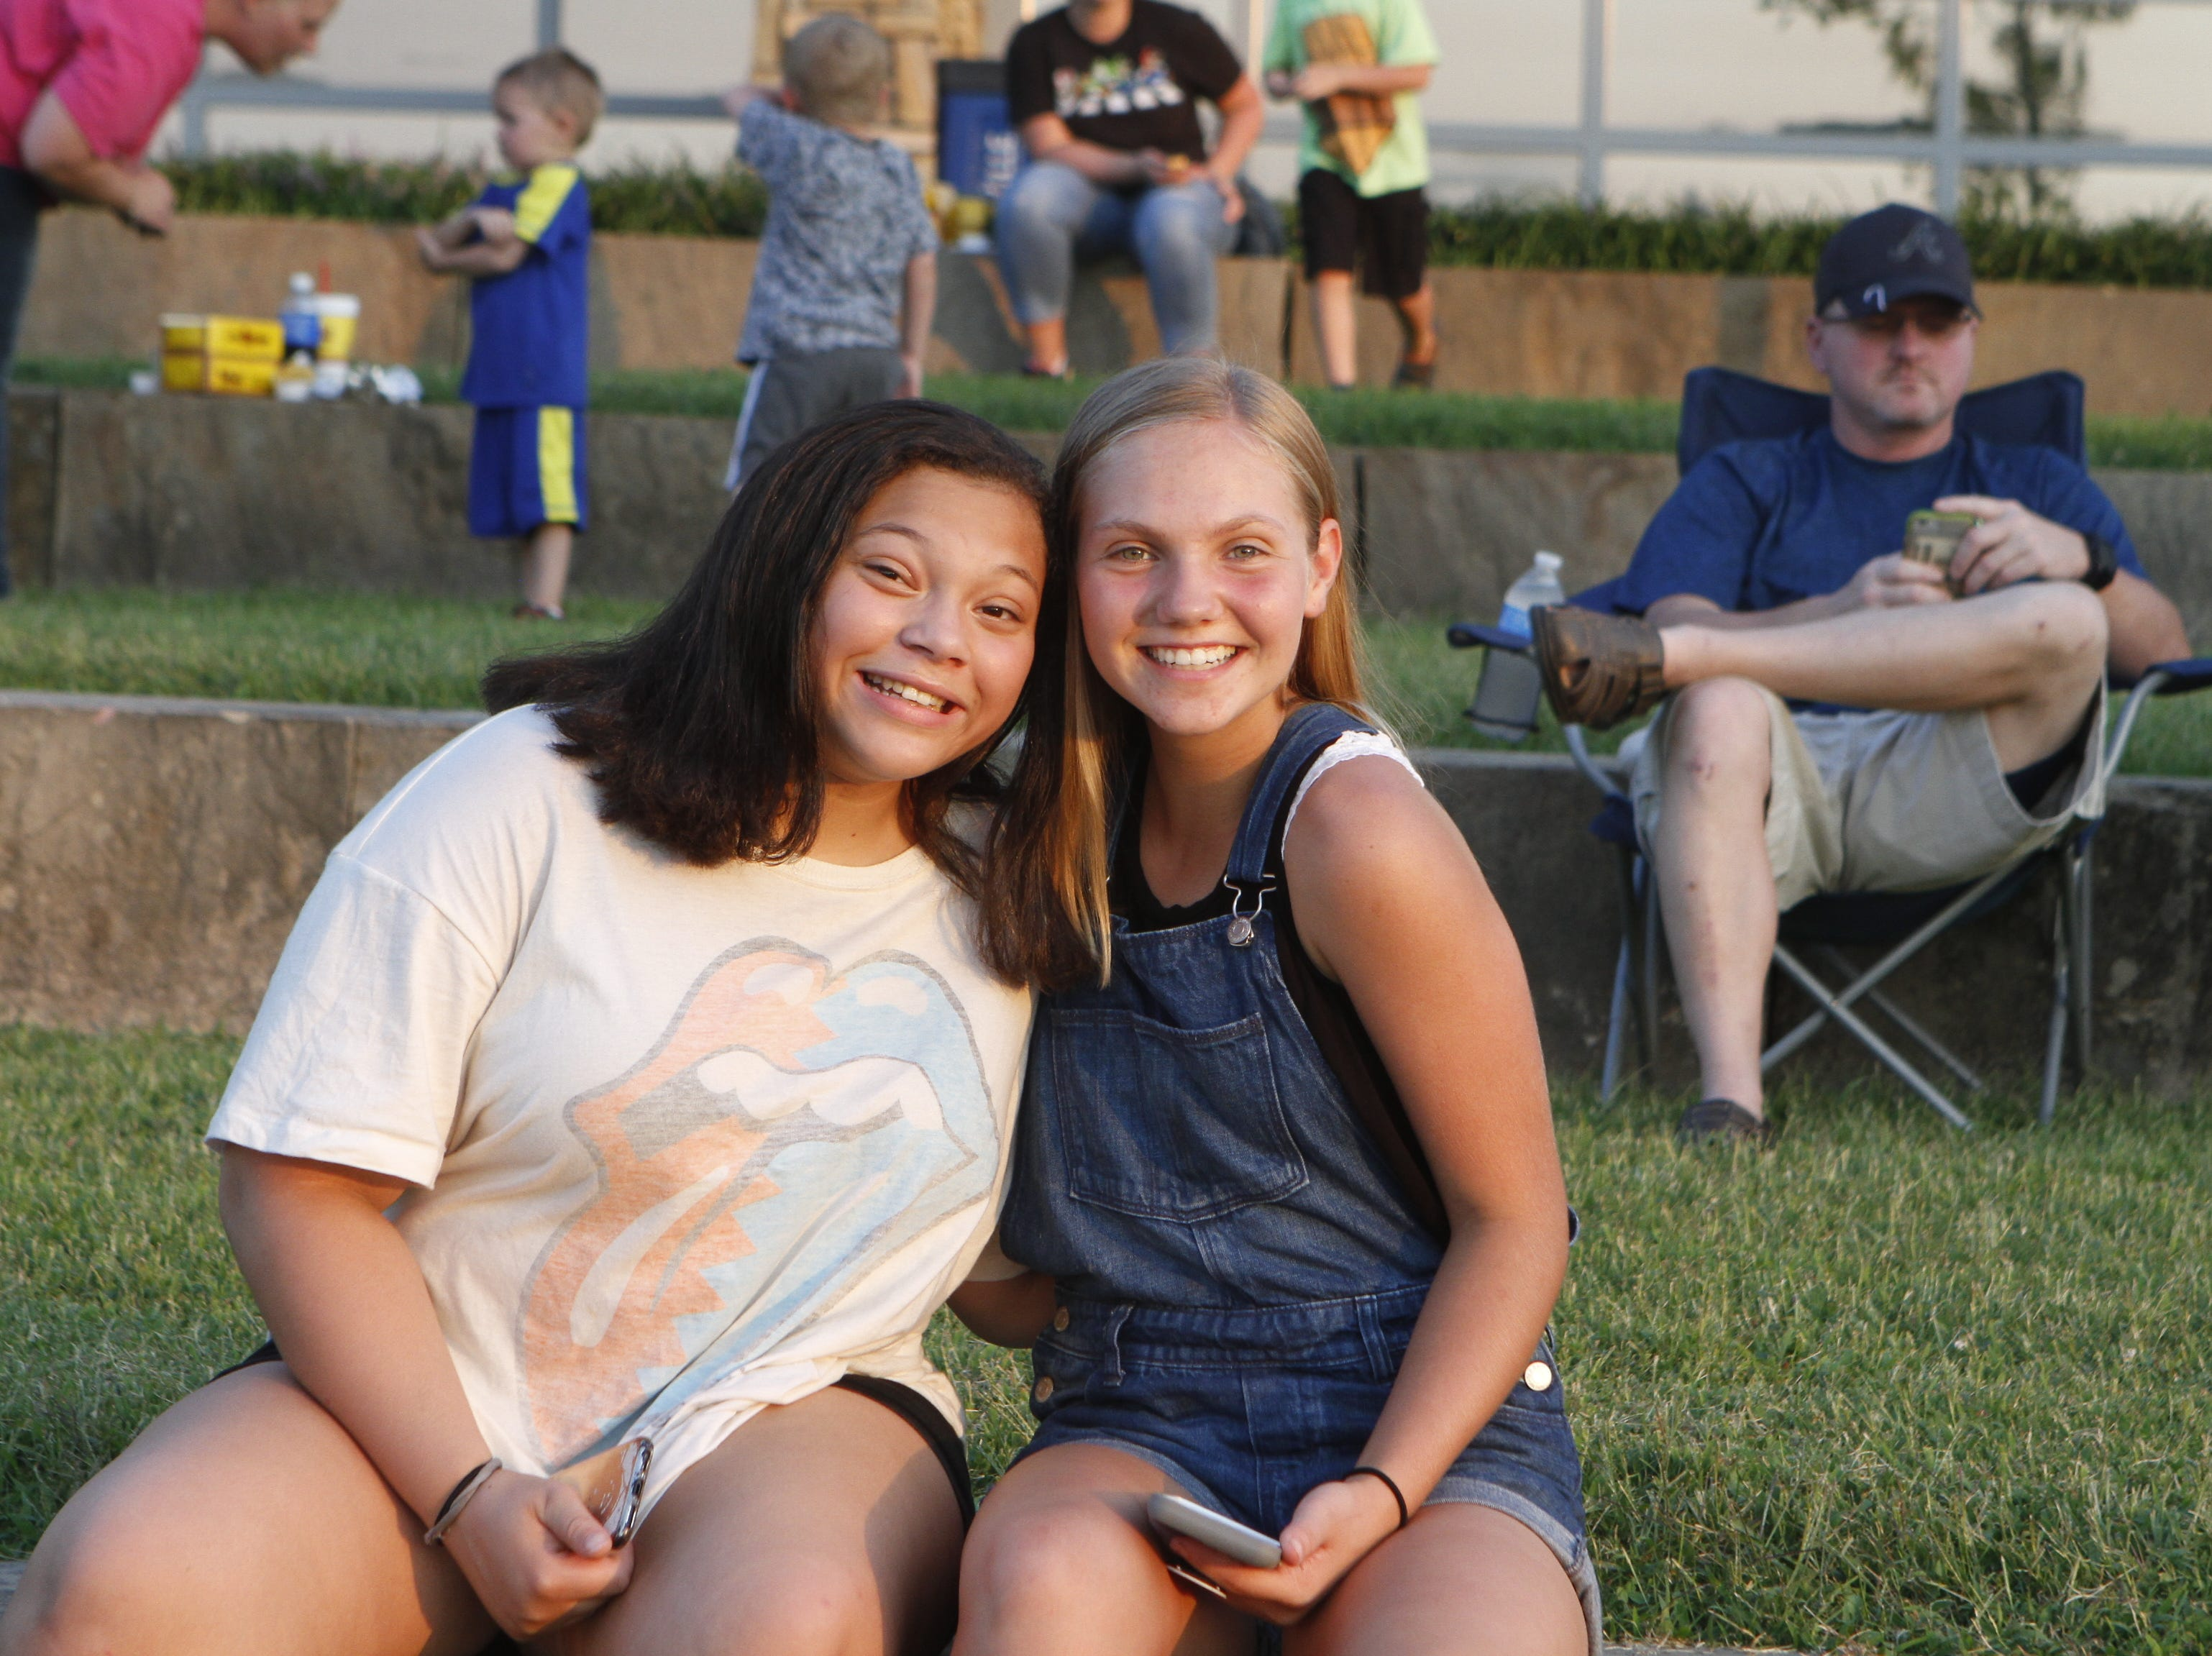 Saved By The Music: The Ultimate 90's Experience performed at Saturdays Road to Riverfest, a Liberty Park summer concert series event.